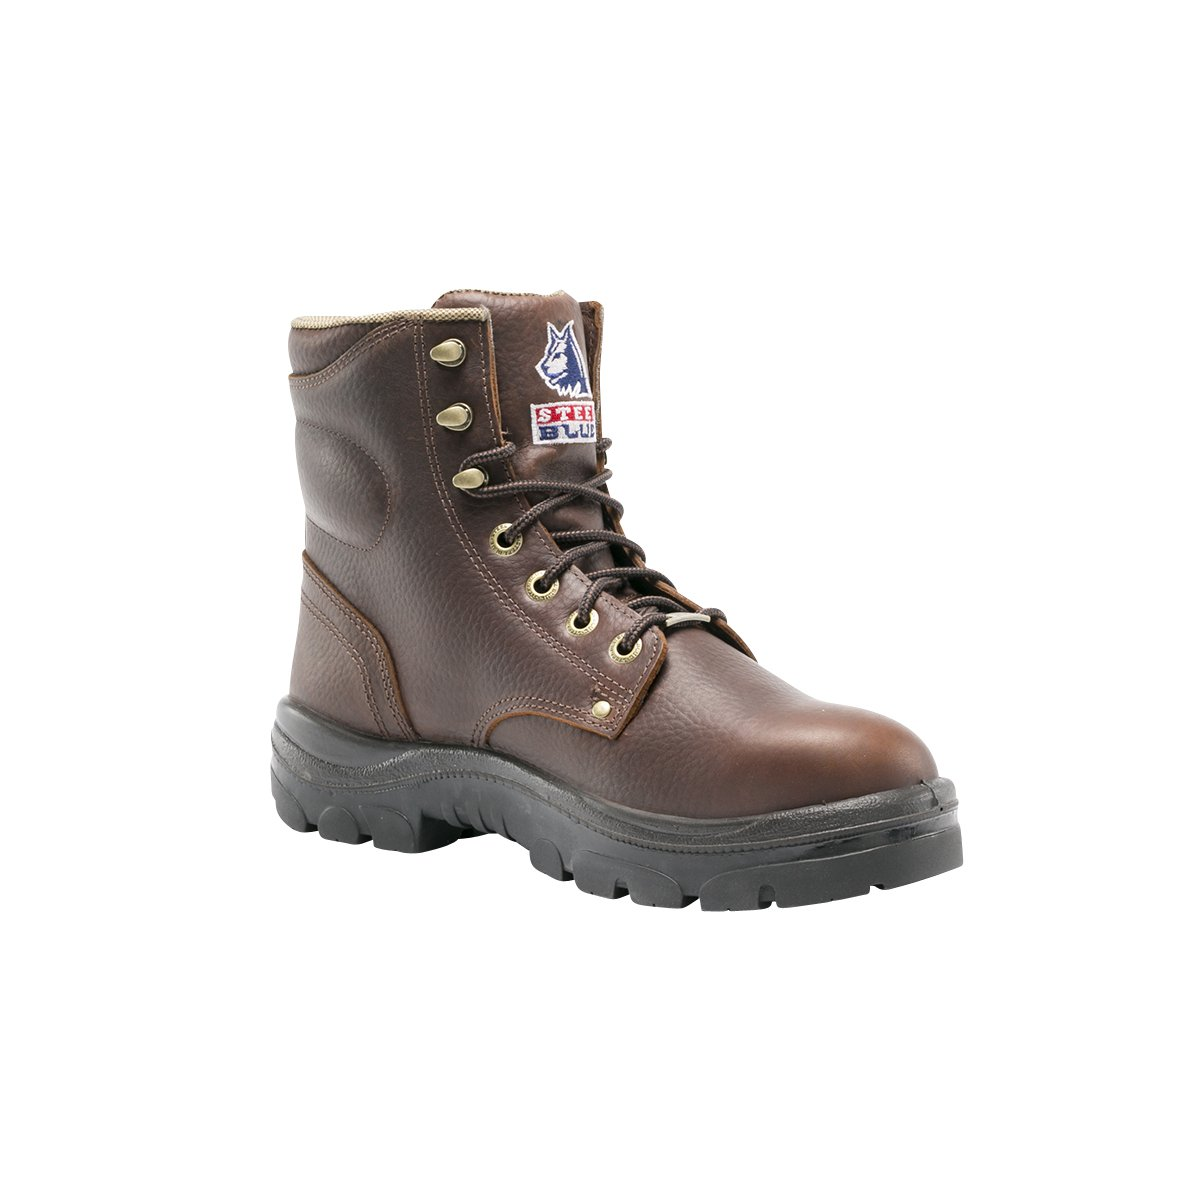 Columbine Argyle Waterproof-812952